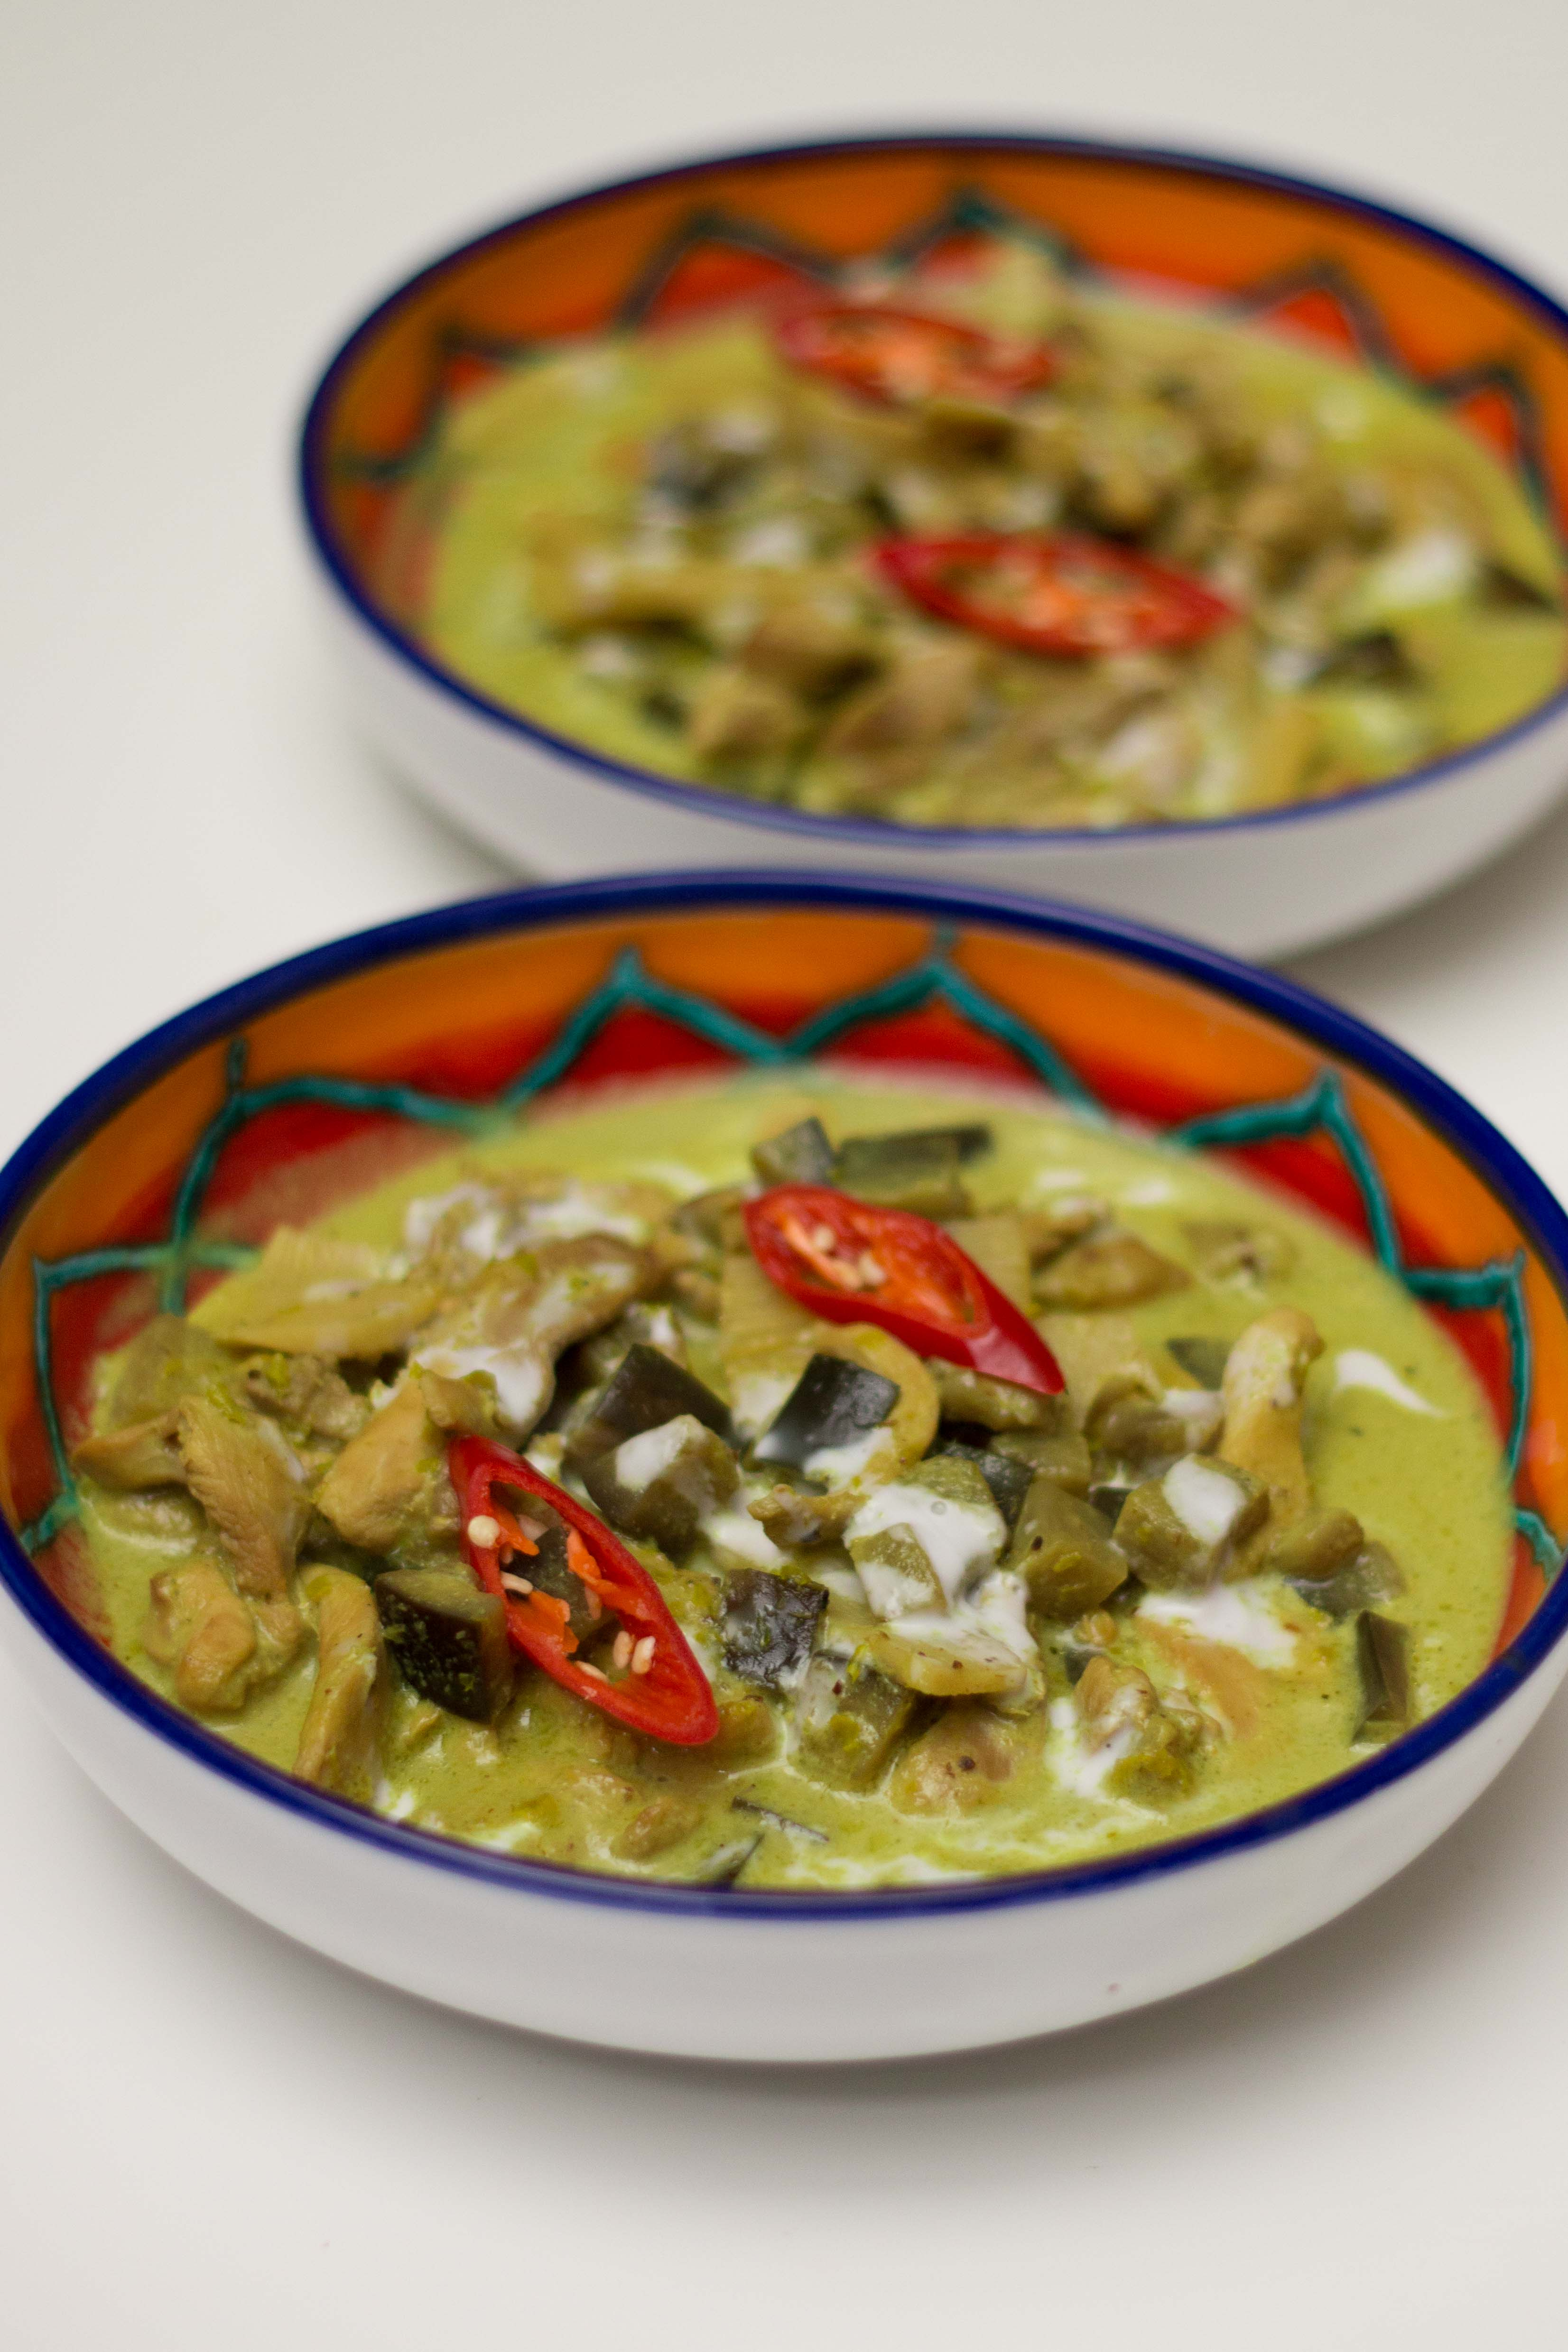 Chicken green curry i dont deny that cooking thai food using traditional techniques can promise authentic tastes but taking shortcuts are just as appealing when scrapped for forumfinder Gallery